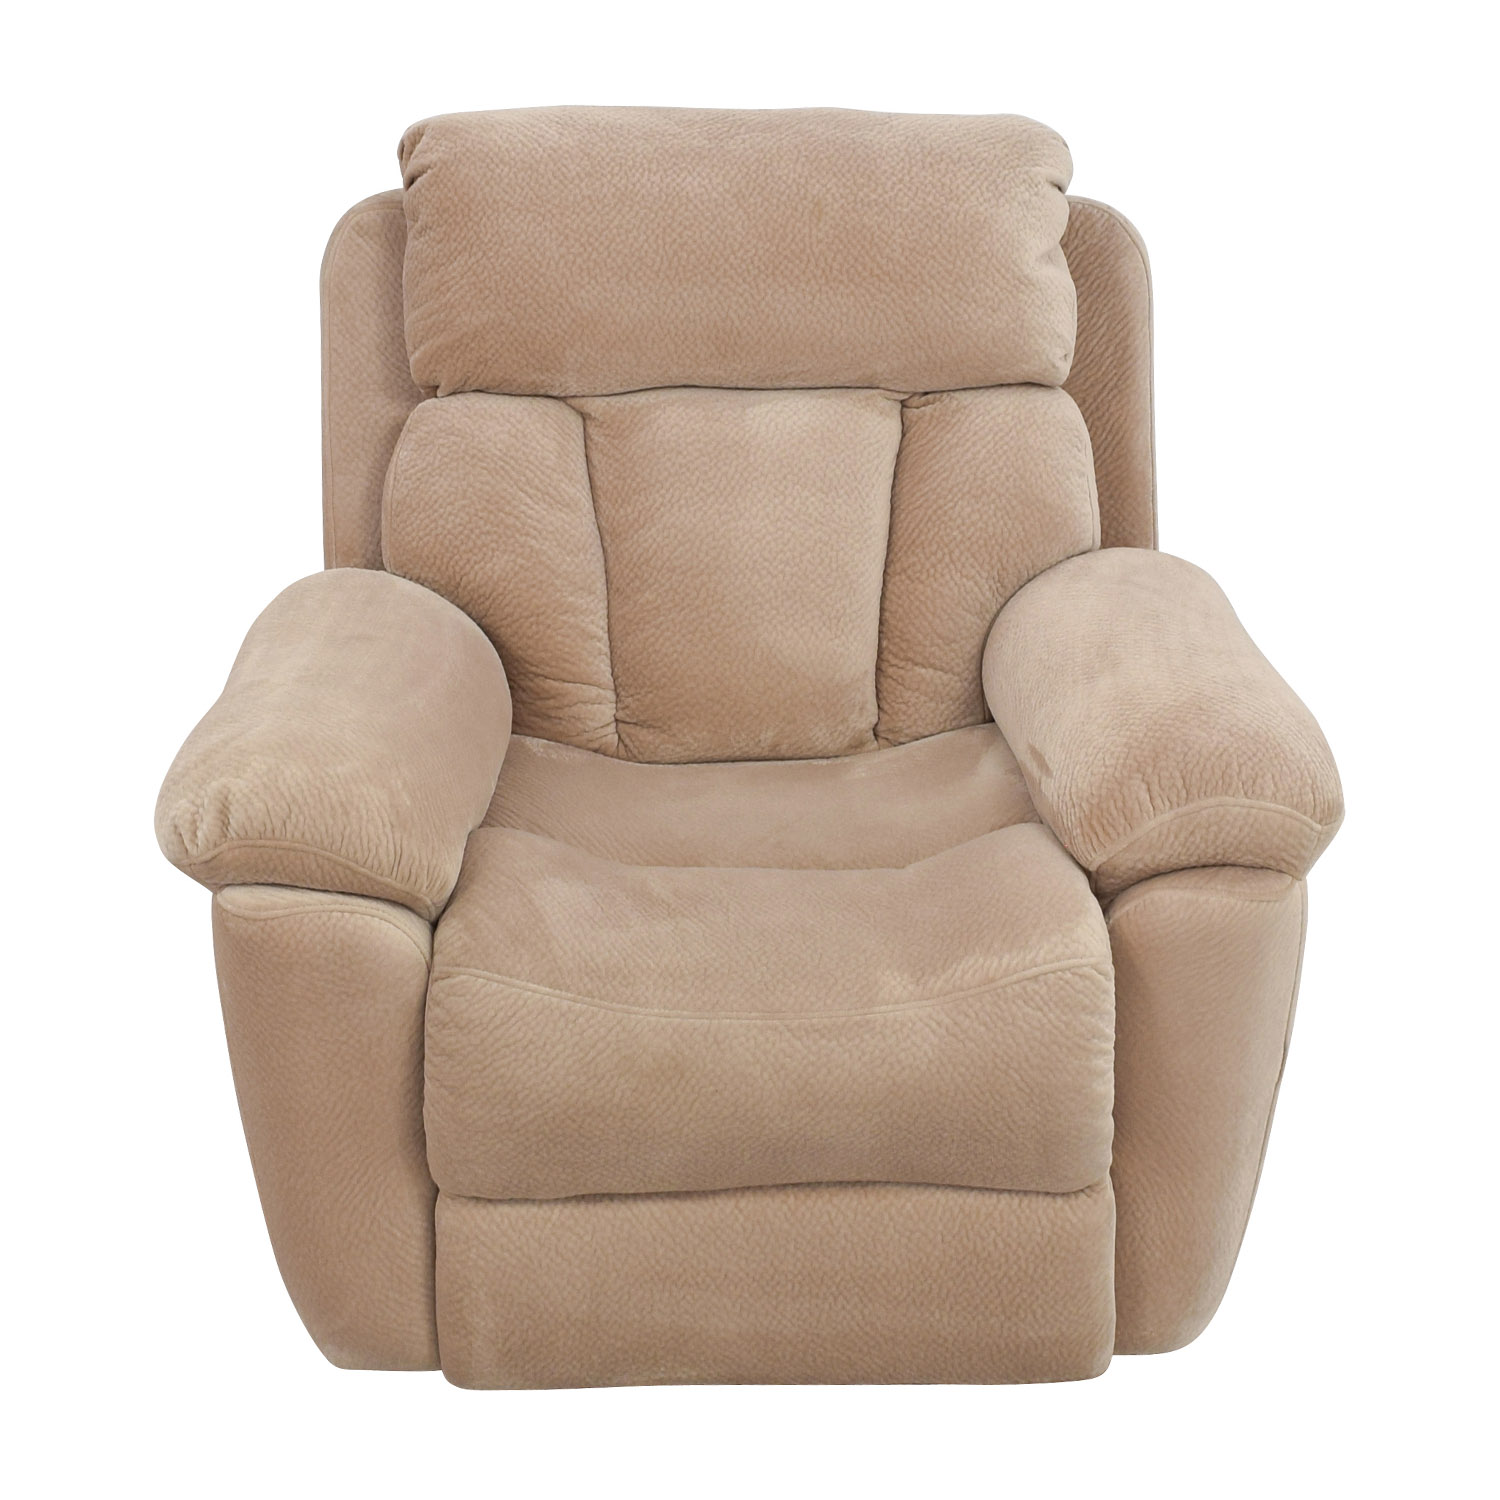 shop Jennifer Furniture Beige Microfiber Recliner Chair Jennifer Furniture Recliners